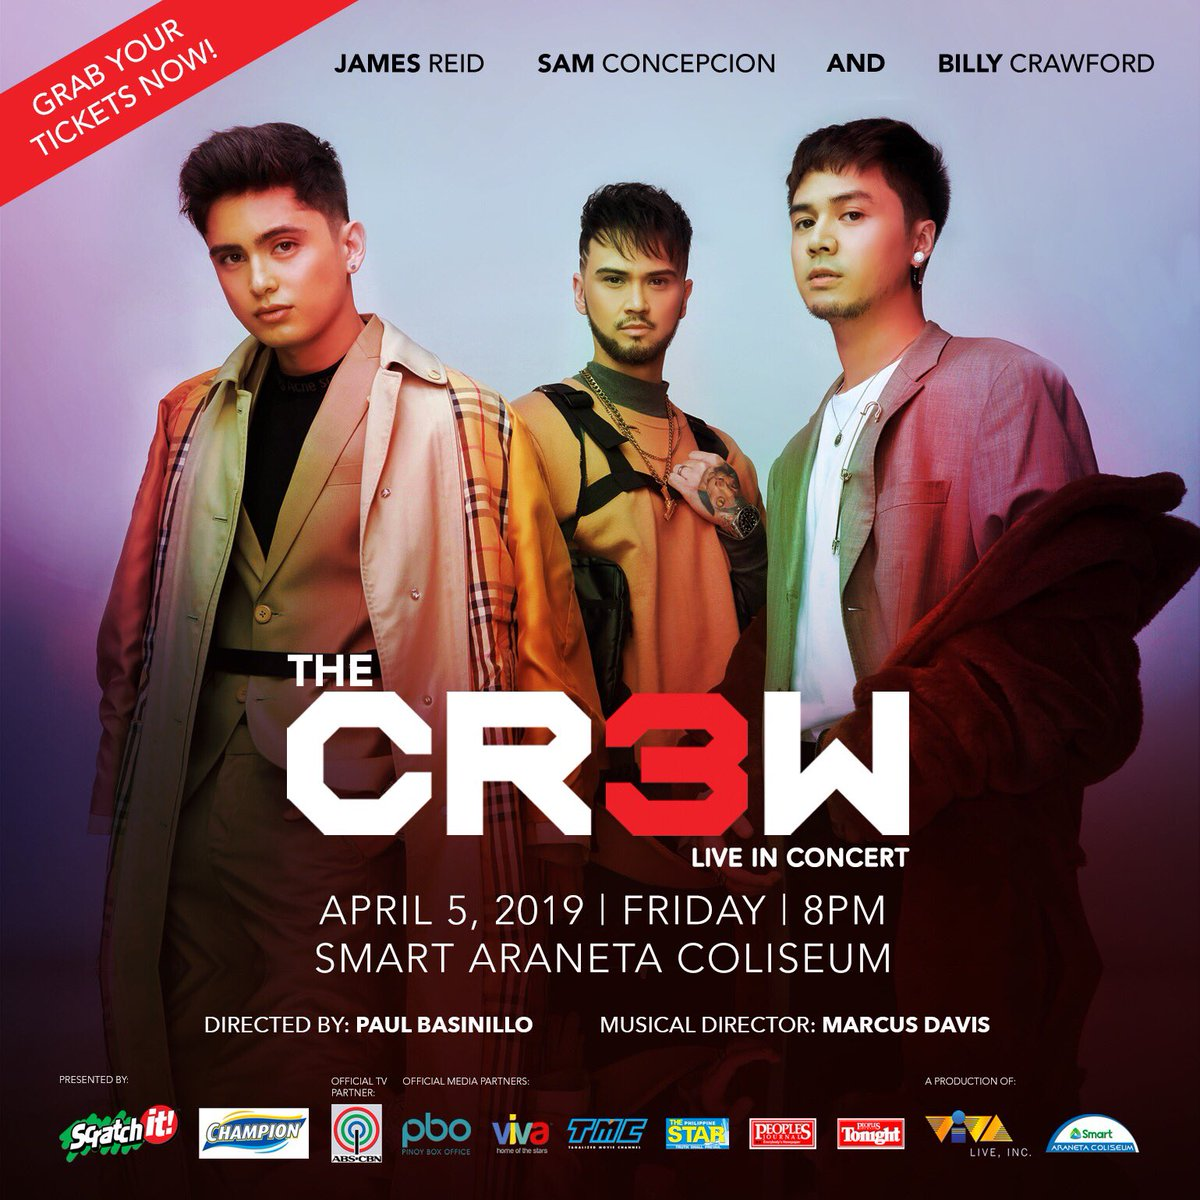 Join THE CR3W live in concert on April 5, 2019 at the Smart Araneta Coliseum!  with SPECIAL GUESTS: Yassi Pressman, Coleen Garcia, and; Nadine Lustre   For inquiries call TicketNet at 911-5555, or VIVA Live at 687-7236.  THE #CR3W<br>http://pic.twitter.com/lFt45kWehg